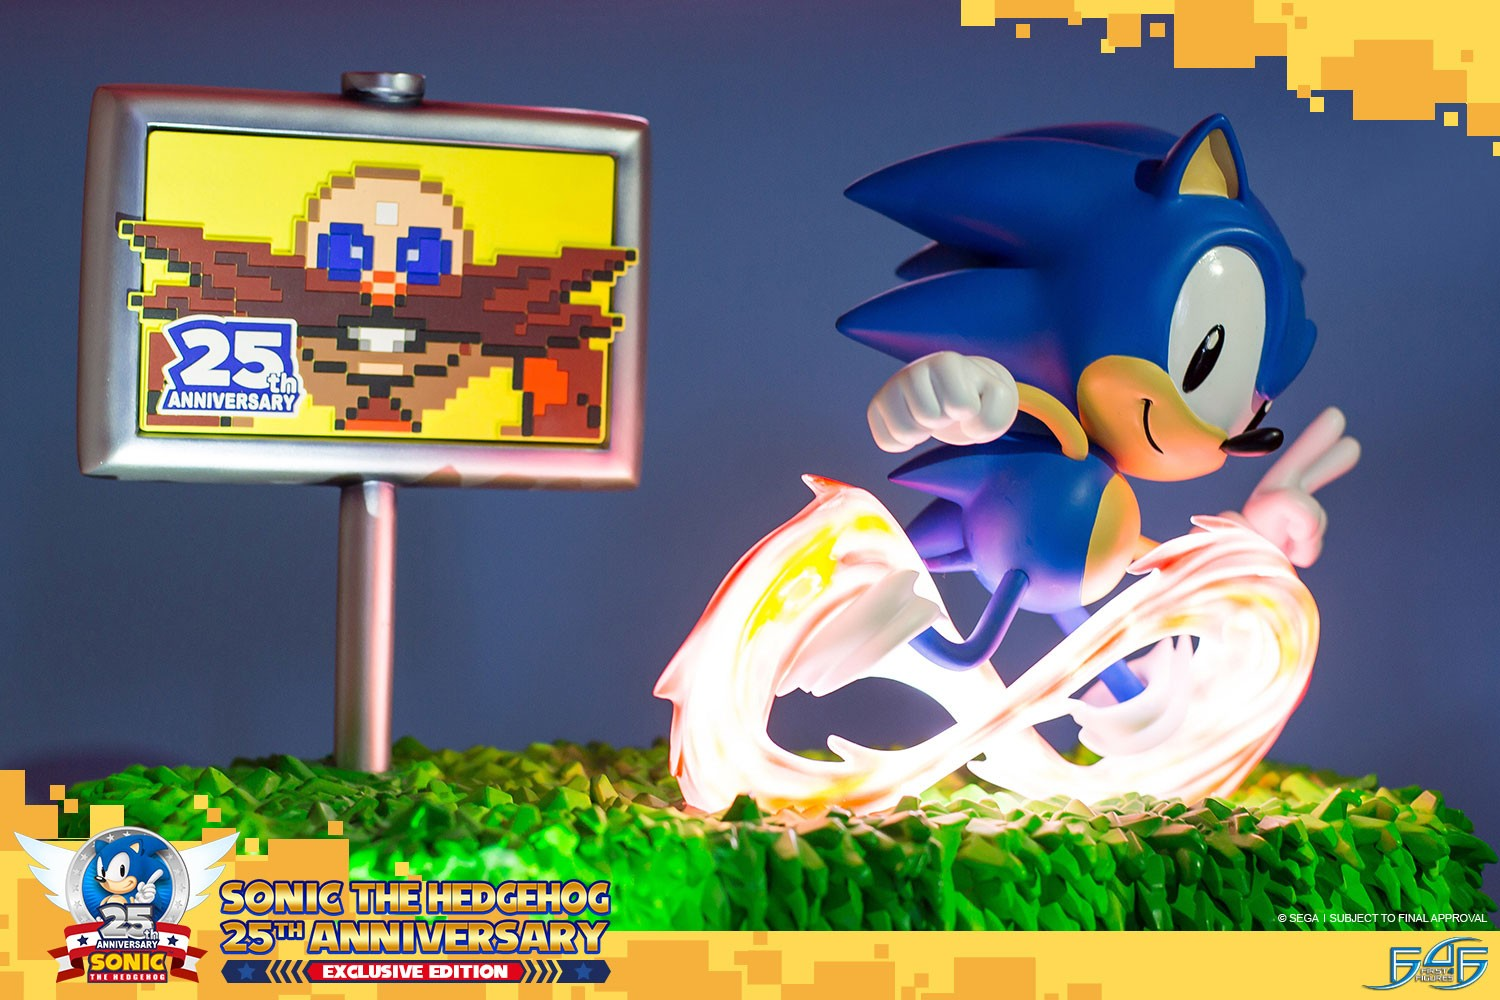 Sonic The Hedgehog Poster Gives Us a Glimpse of